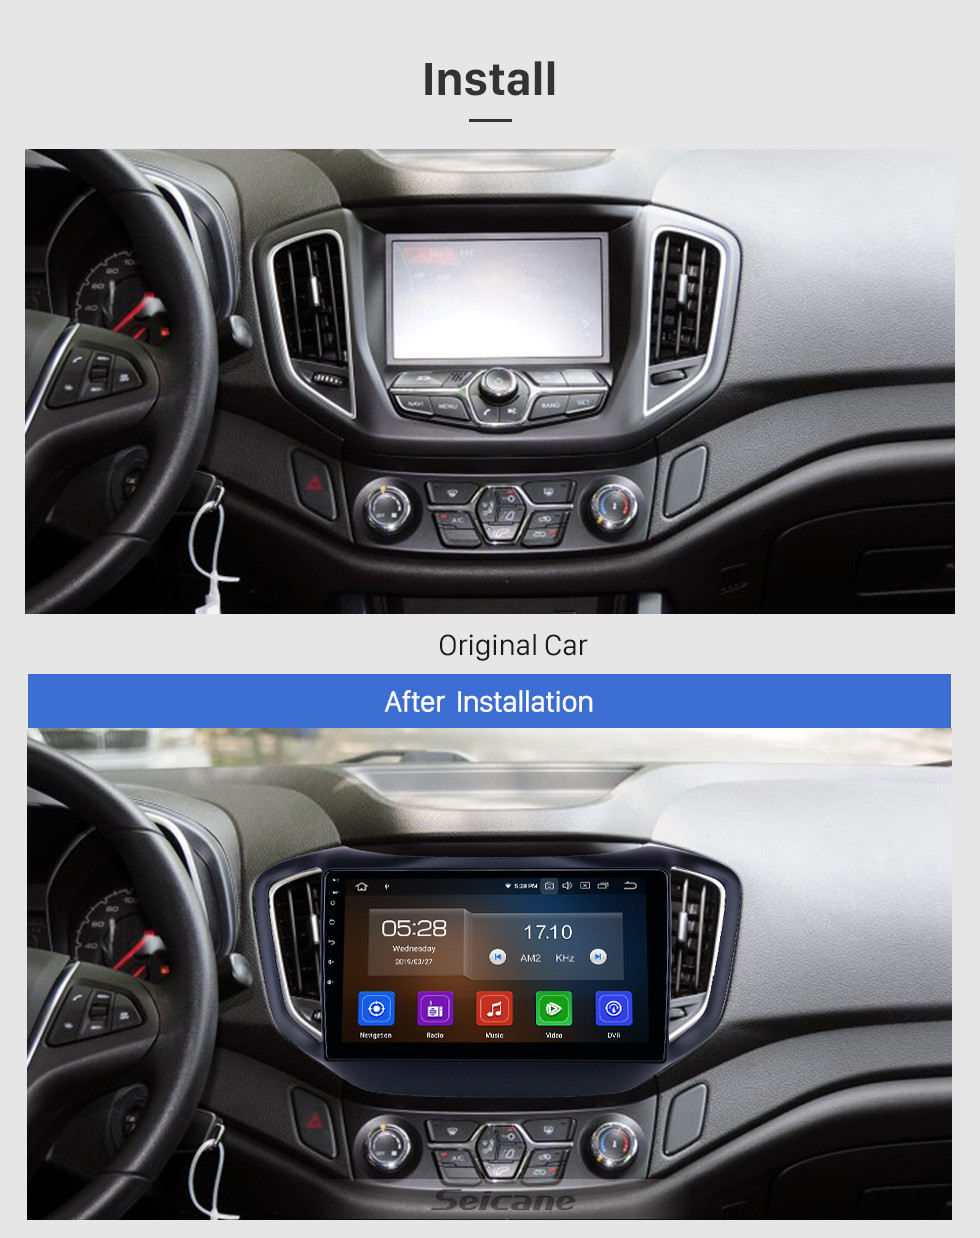 Seicane 10,1 pouces Android 10.0 Radio de navigation GPS pour 2014-2017 Chery Tiggo 5 avec écran tactile HD Carplay USB support Bluetooth DVR DAB +